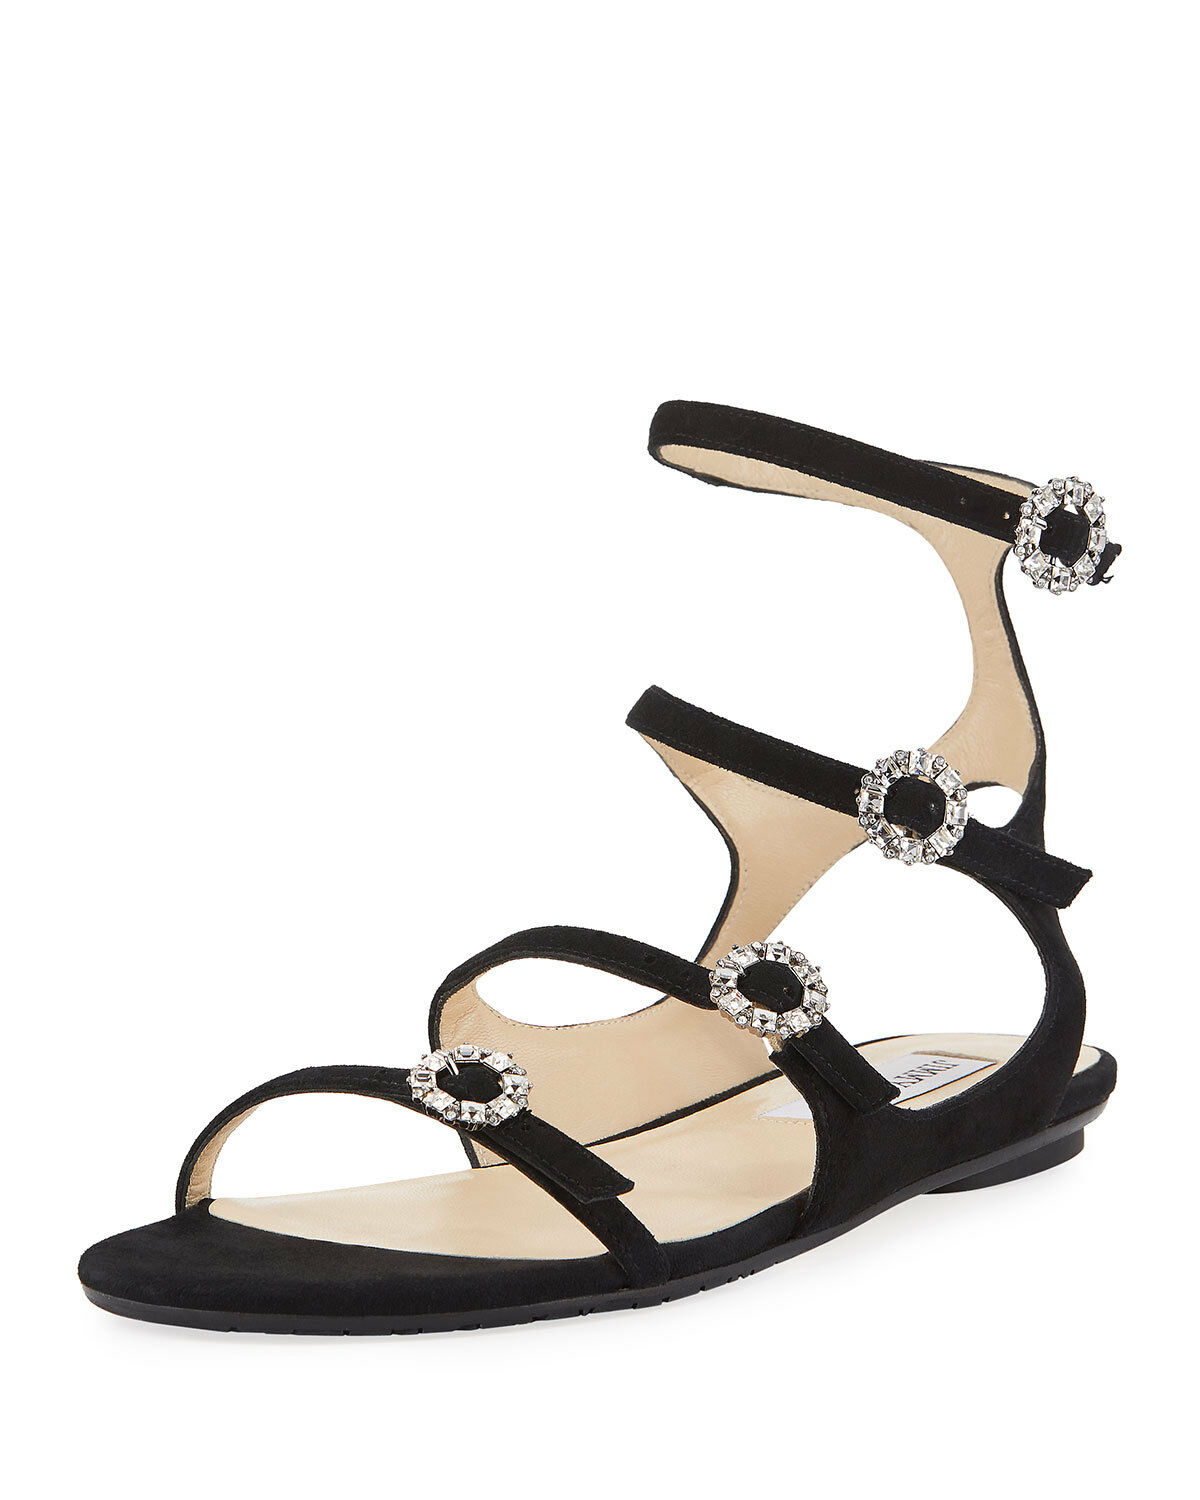 Jimmy Jimmy Jimmy Choo Naia Suede Flat Sandal with Crystal Buckles, Black 37.5 MSRP   695 d1c9e1